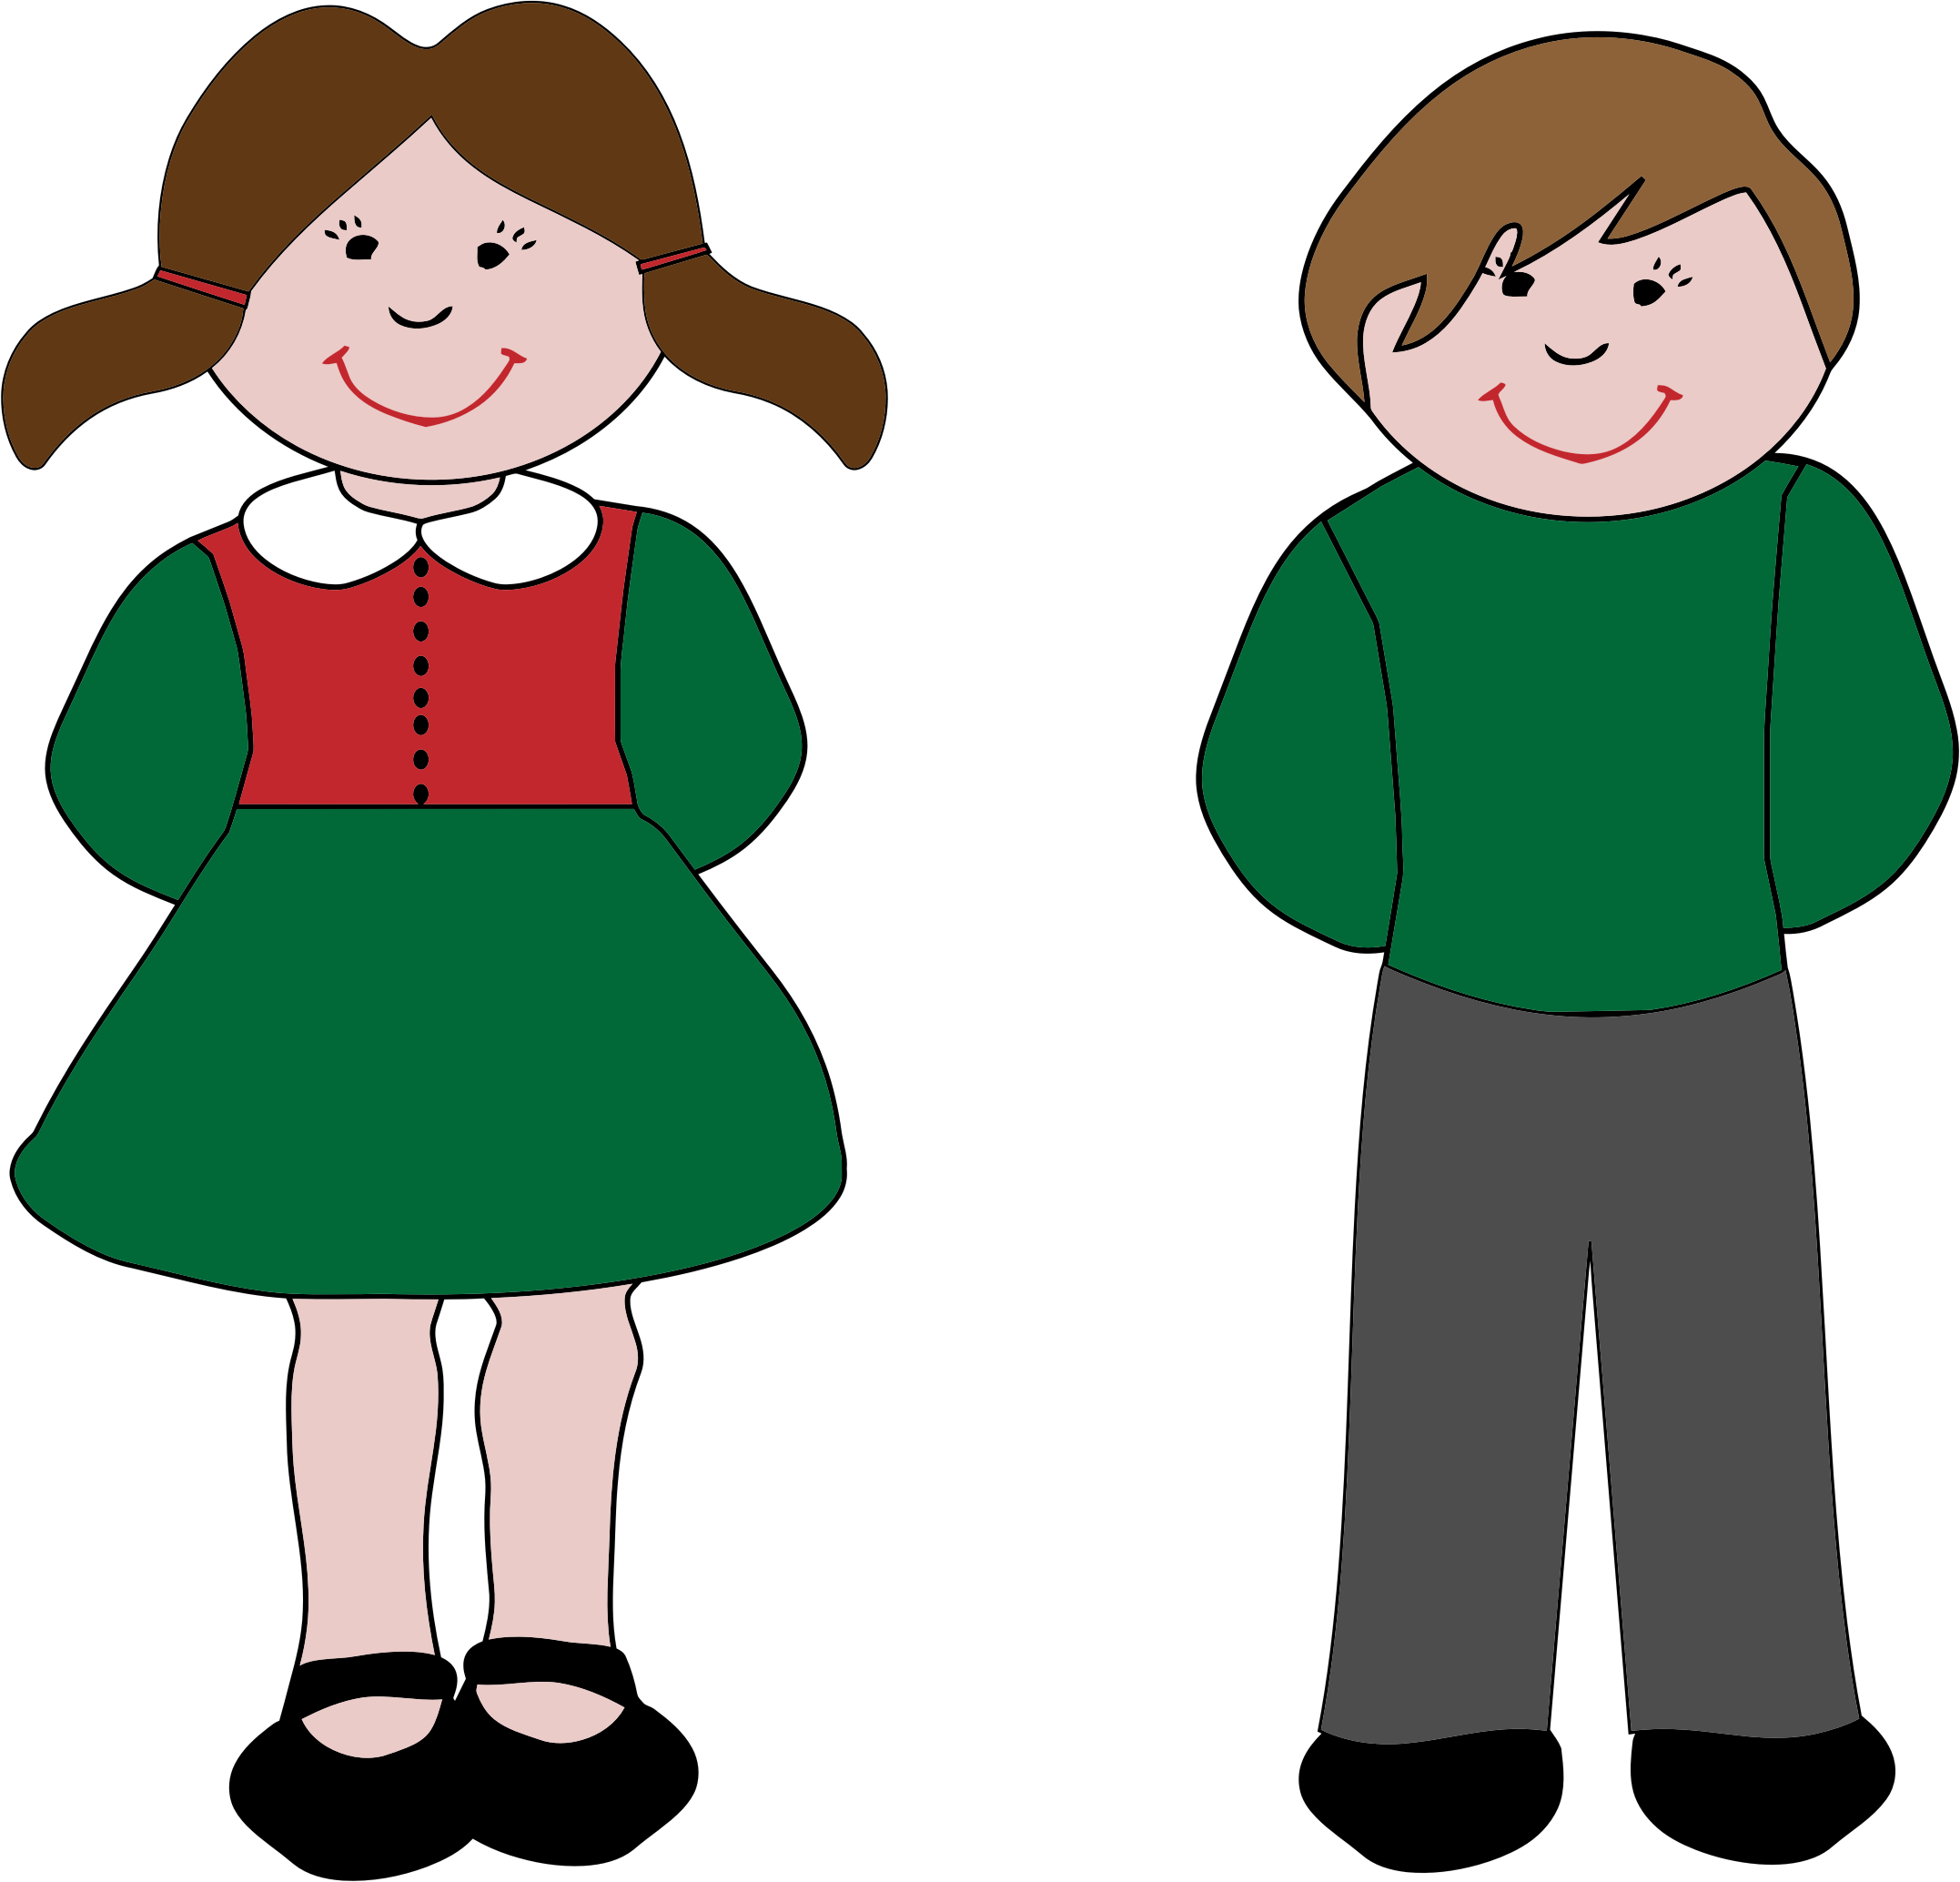 Boy and girl png. Icons free downloads this